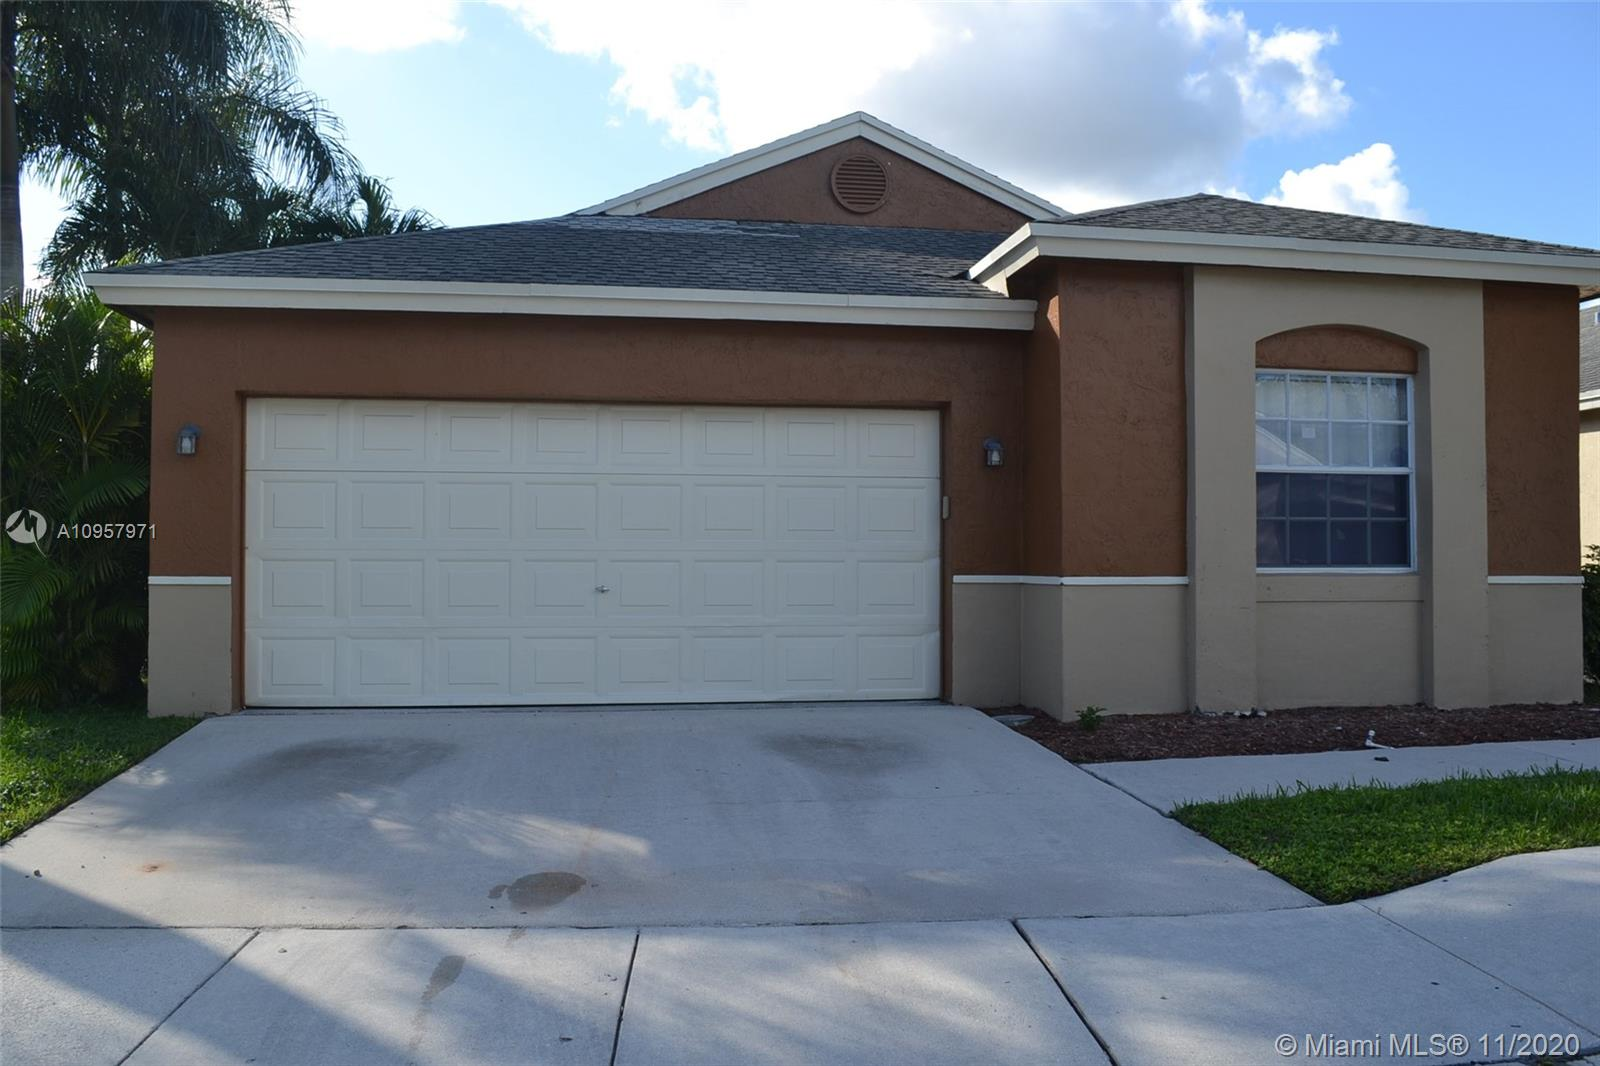 Sunrise living at it's best! 3 bedrooms and 2 bathrooms single family with one car garage. Corner lot with updated kitchen and bathrooms, freshly painted with neutral colors and tiled throughout the living area. Centrally located within close proximity to the Sawgrass Mill Mall and major expressway.